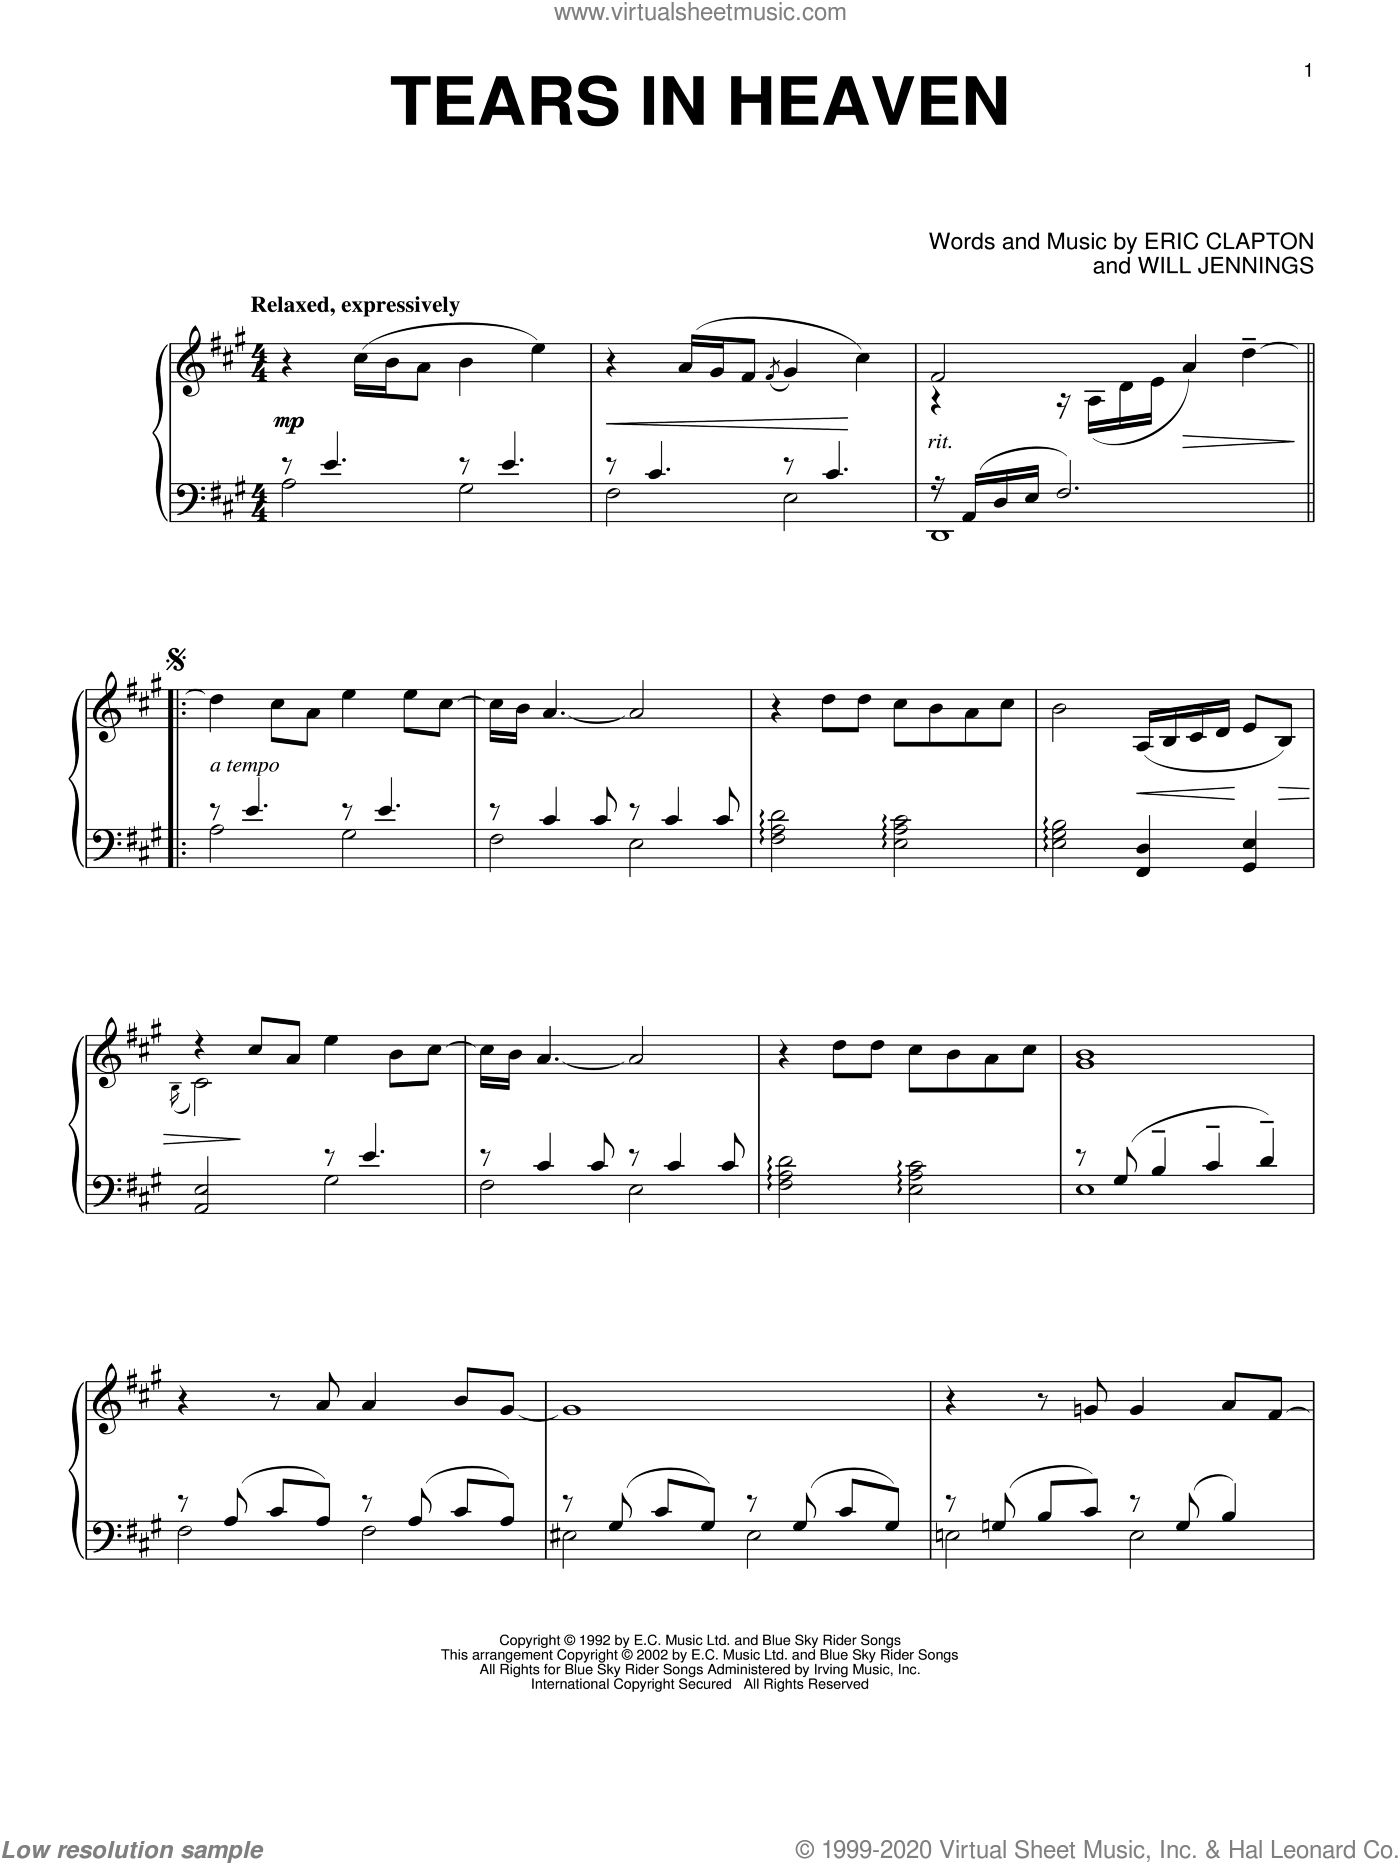 Tears In Heaven sheet music for piano solo by Eric Clapton and Will Jennings. Score Image Preview.